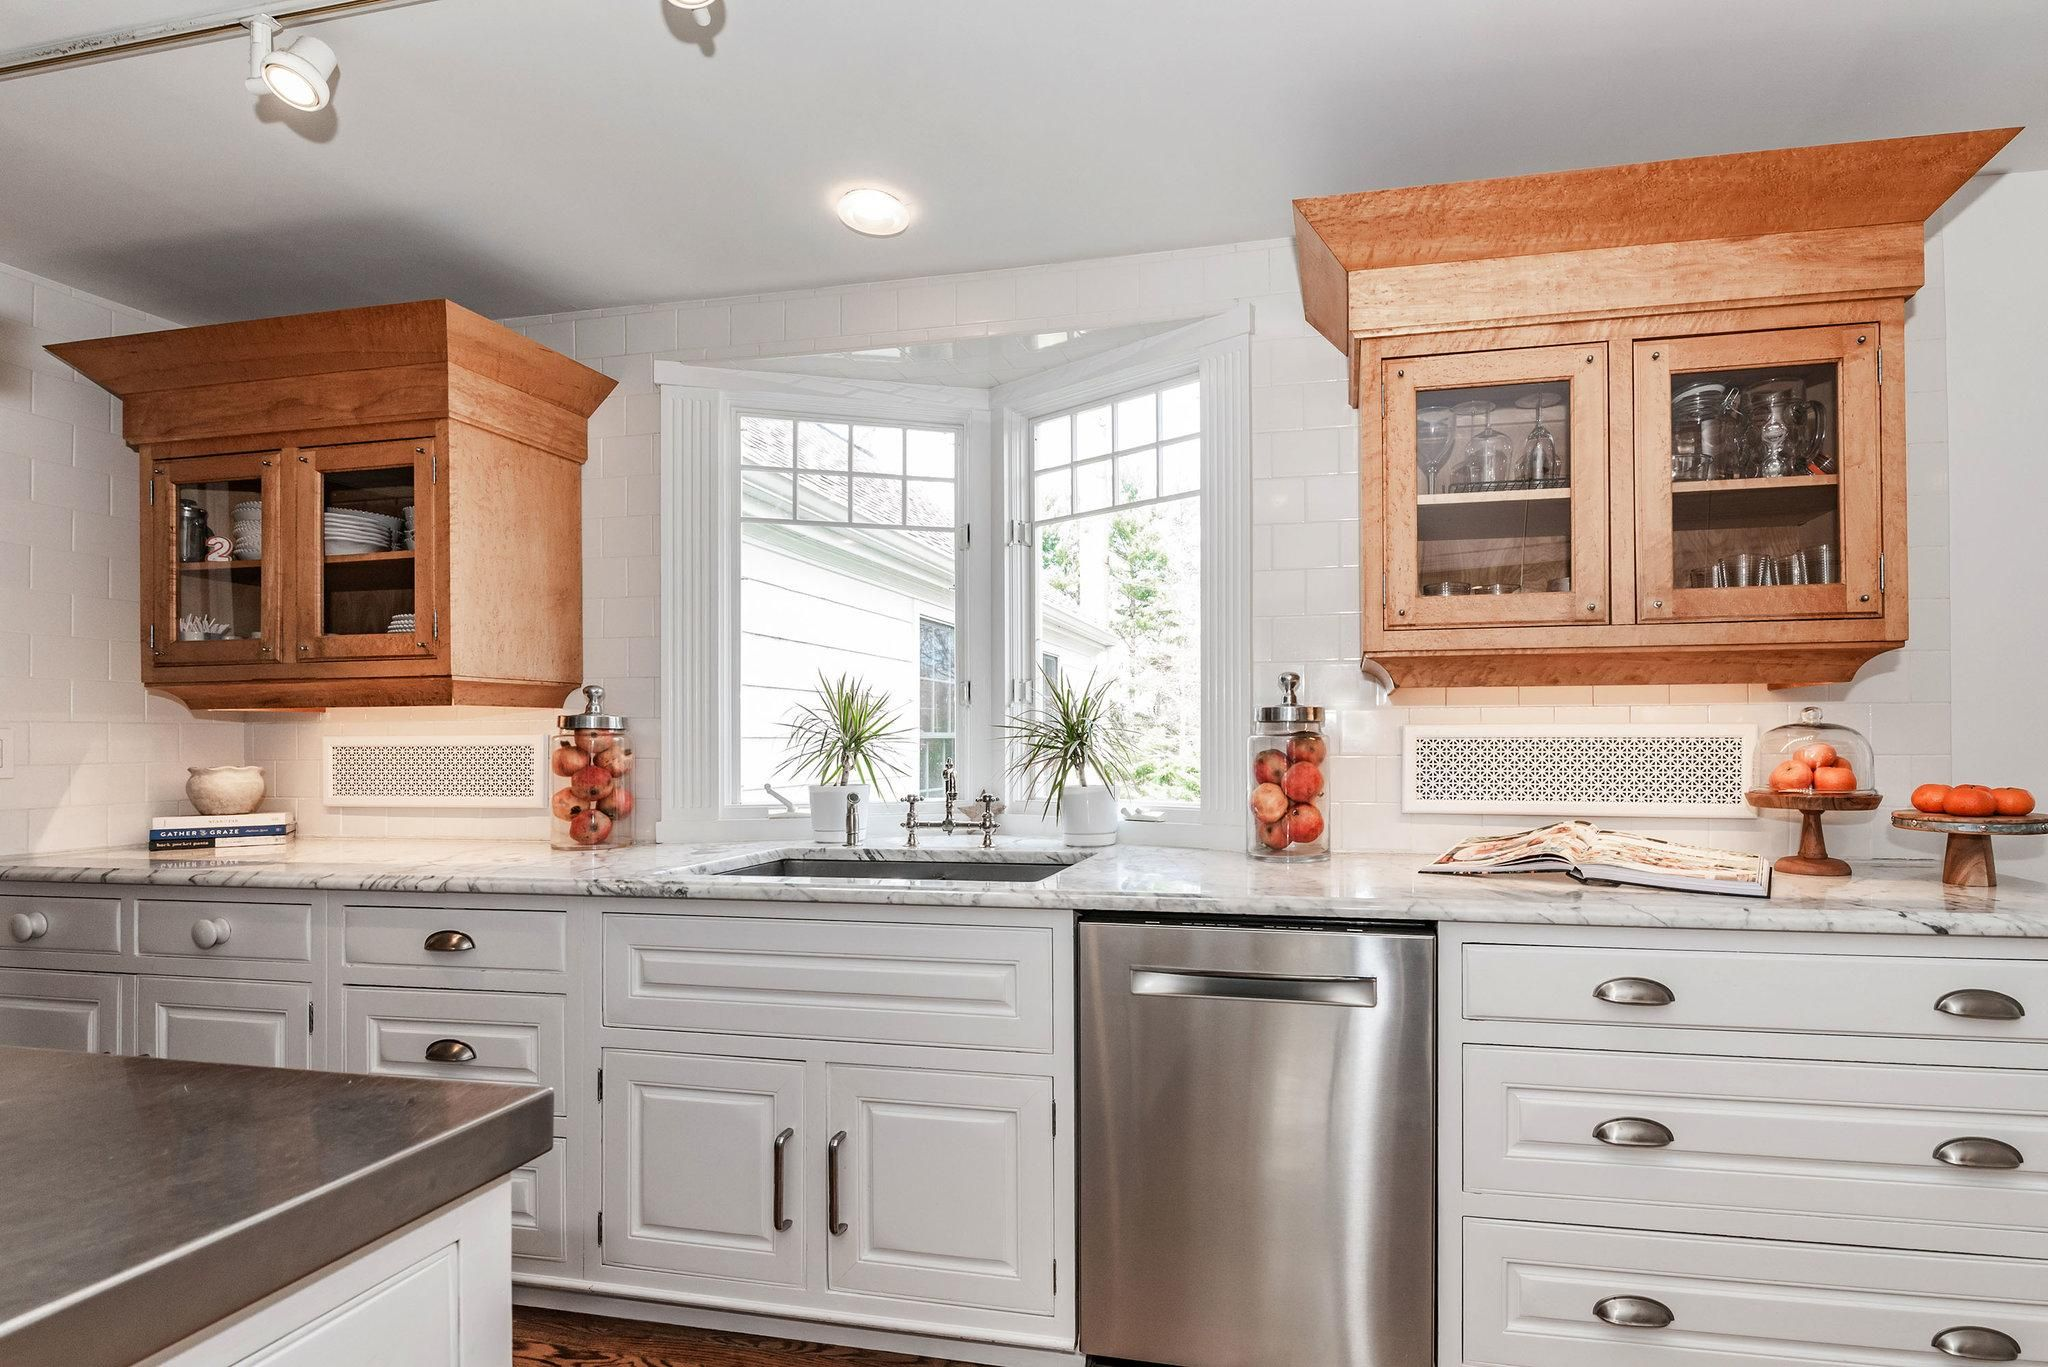 On The Market In The New York Region House Design New York Home Decor